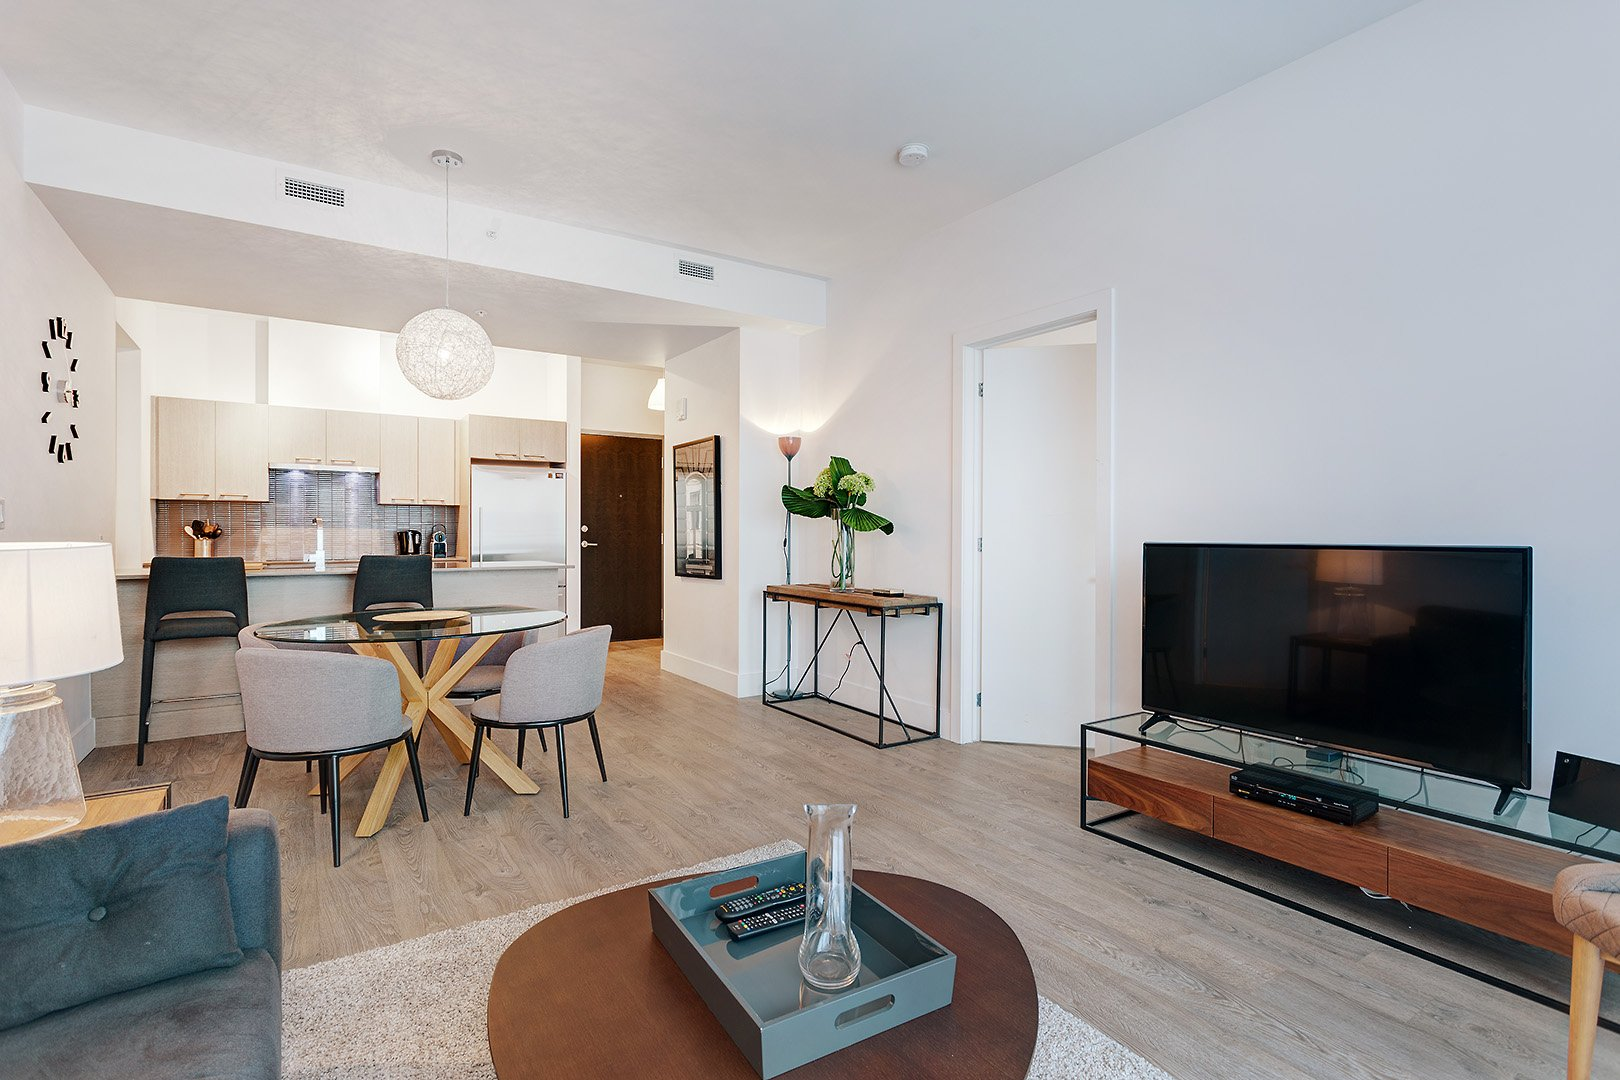 Appartement louer ville marie montreal acheter for Location appartement montreal